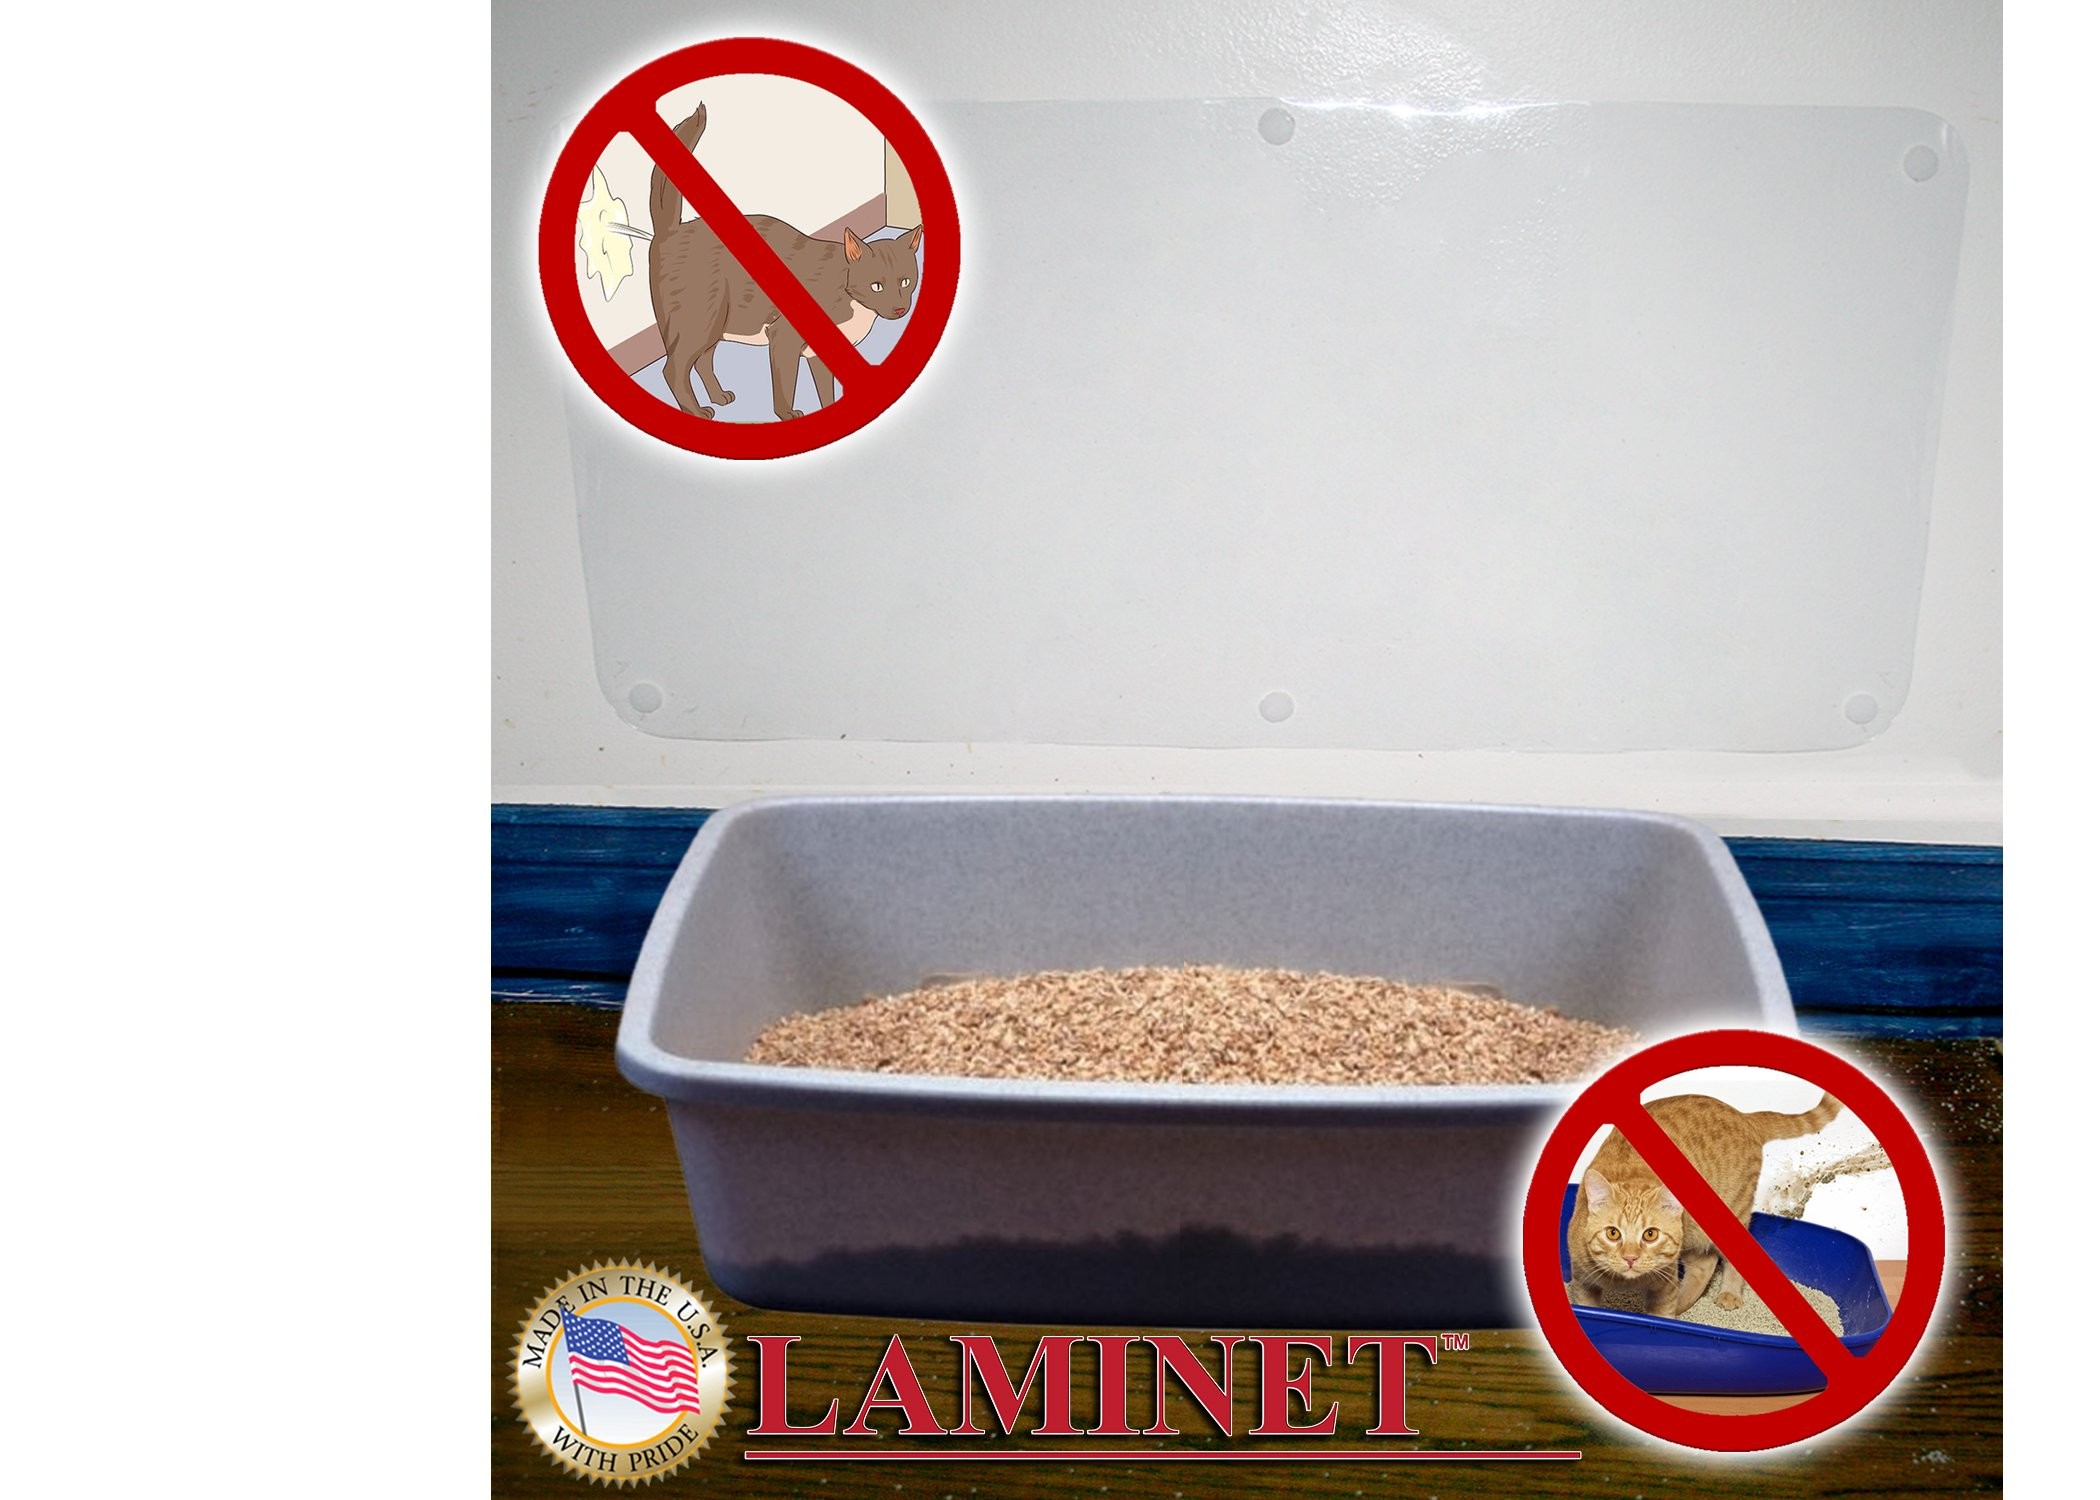 "LAMINET The Original Deluxe Cat Wall Scratch Shield - Protect Your Walls with Our Deluxe Heavy-Duty Flexible Cat Scratch Shield - (32""L x 16""W)"